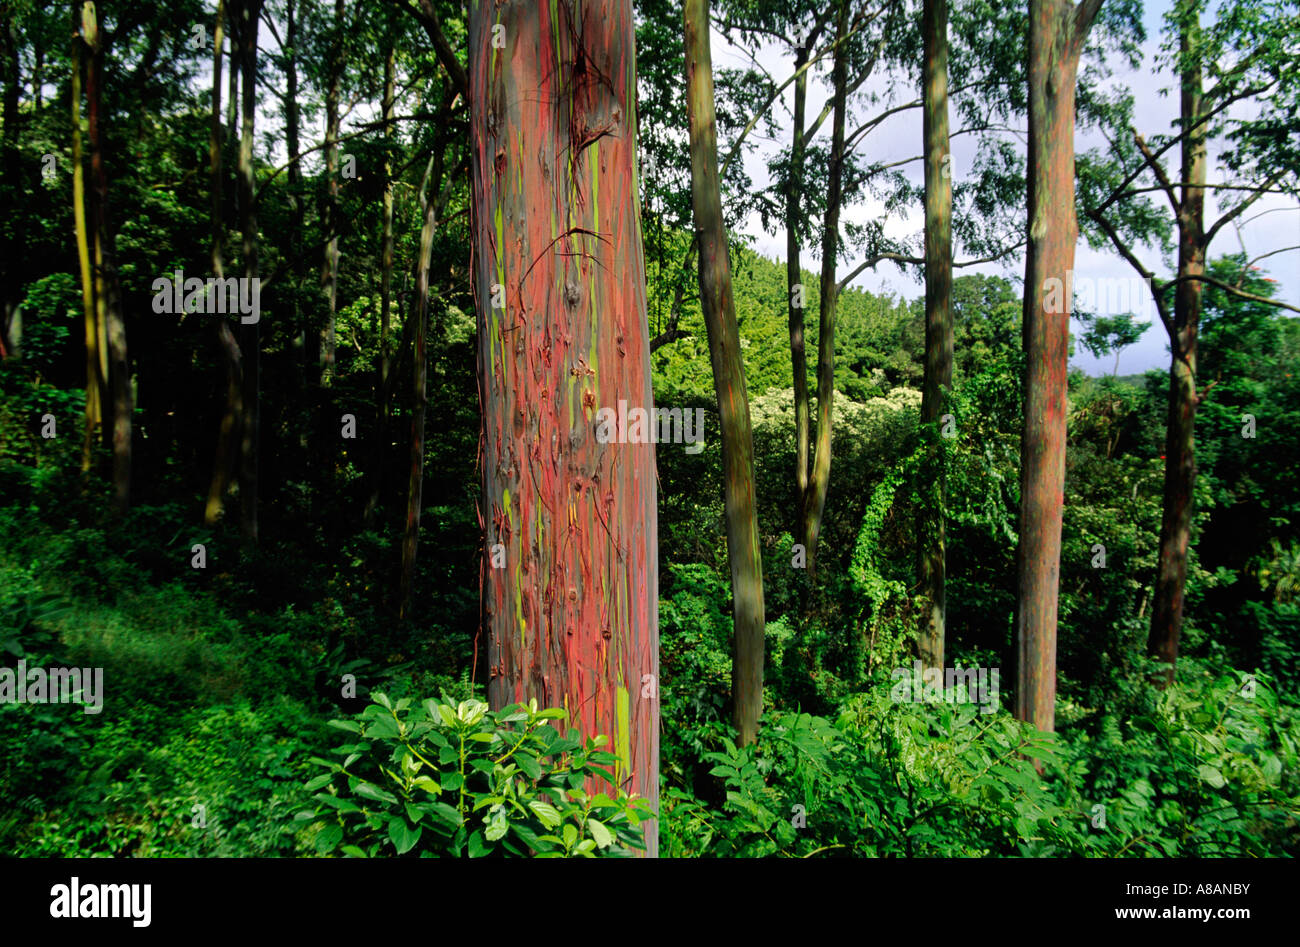 The green red bark of the PAINTED EUCALYPTUS TREES Eucalyptus deglupta is one of natures visual delights MAUI HAWAII - Stock Image